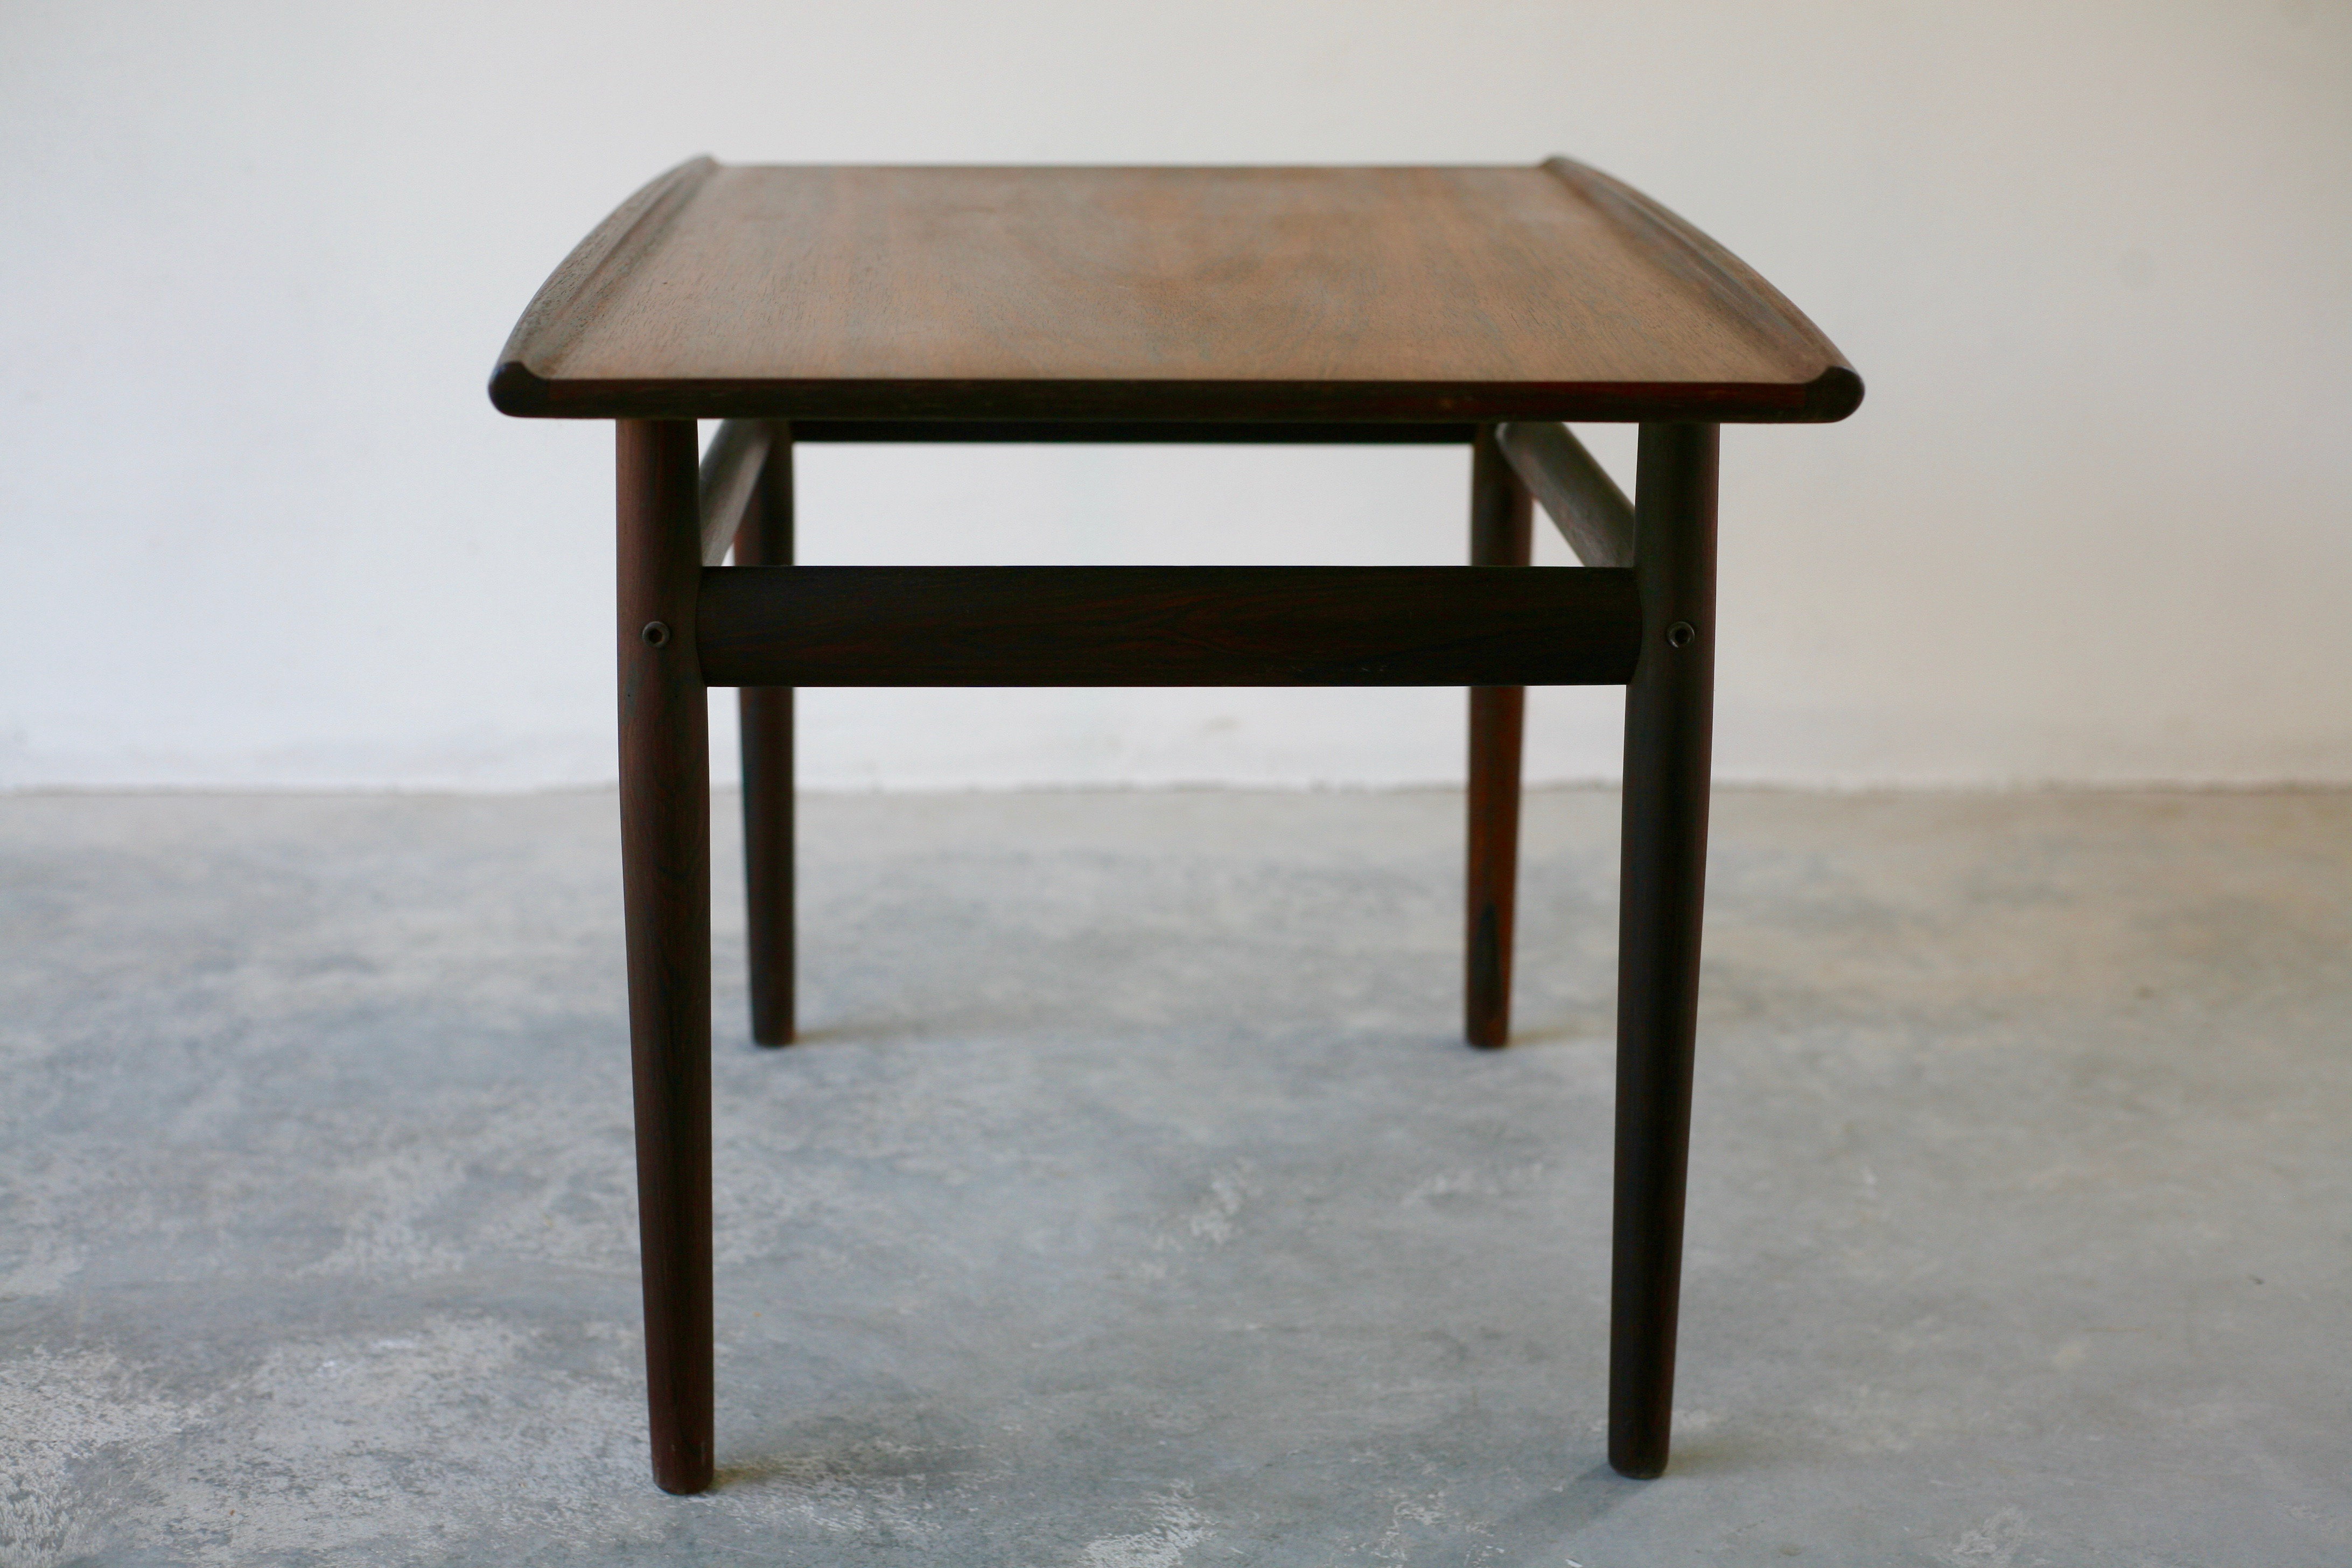 Small sidetable by Grete Jalk for Glostrup